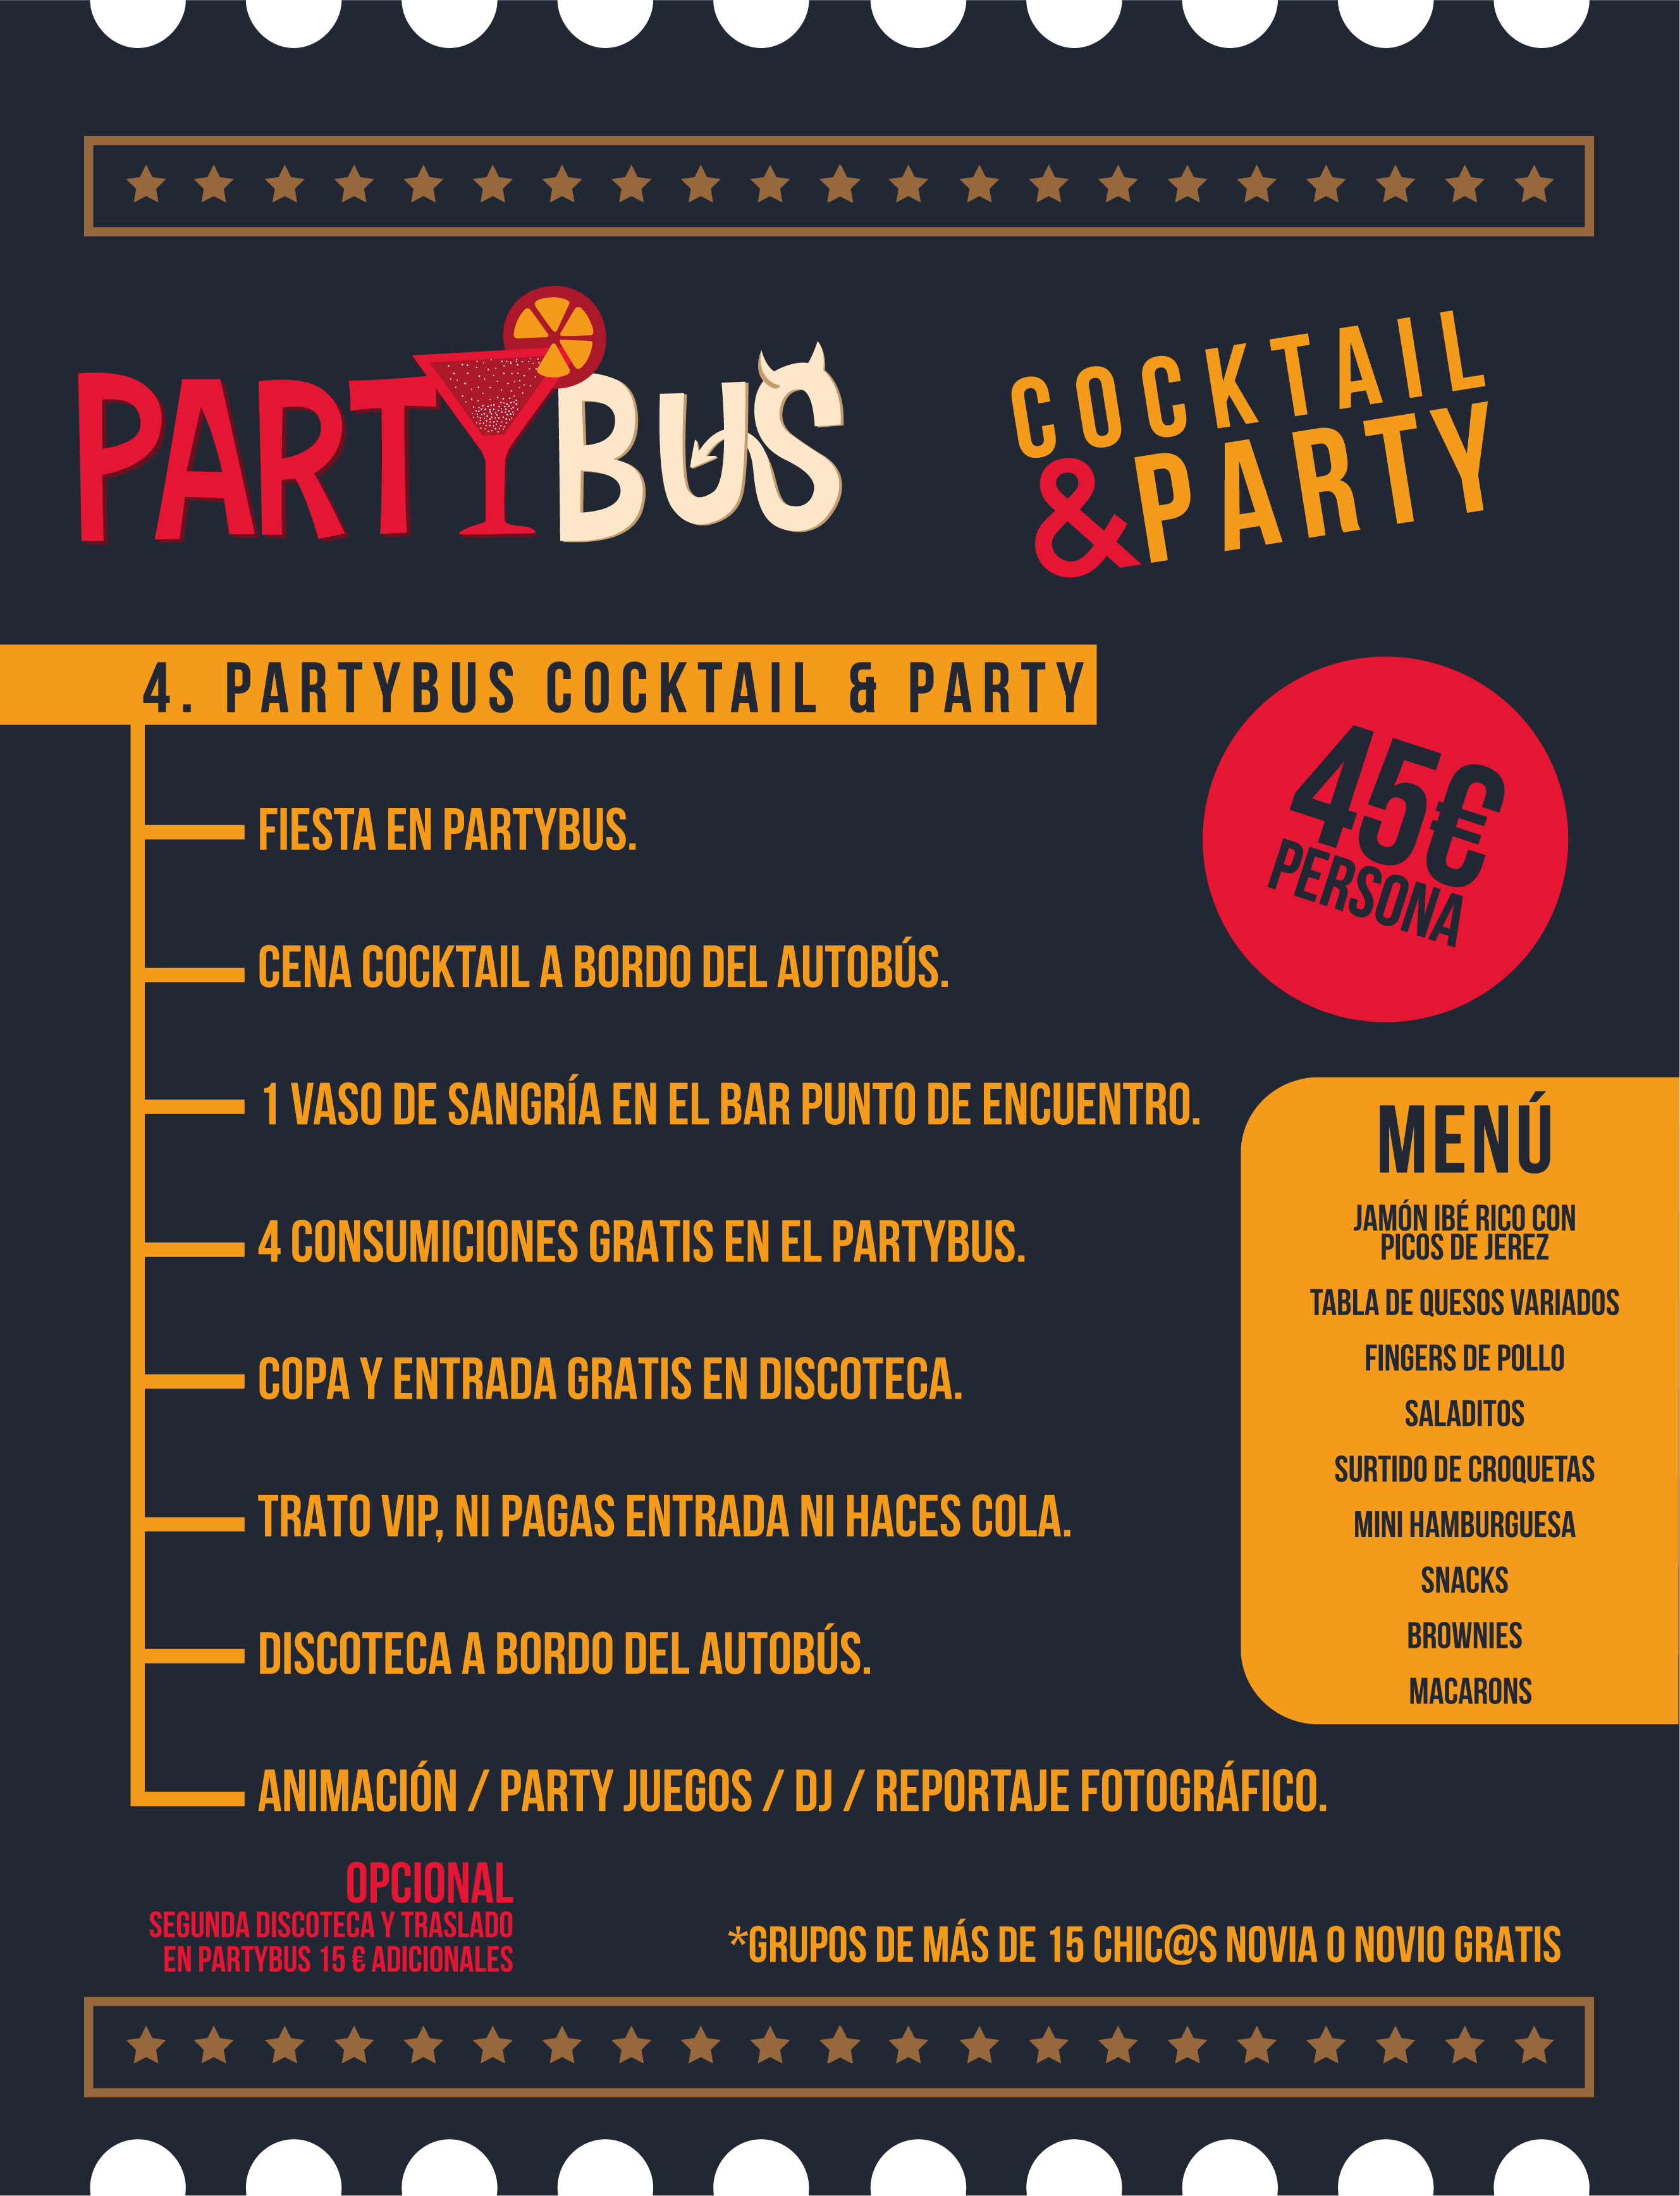 COCKTAIL AND PARTY